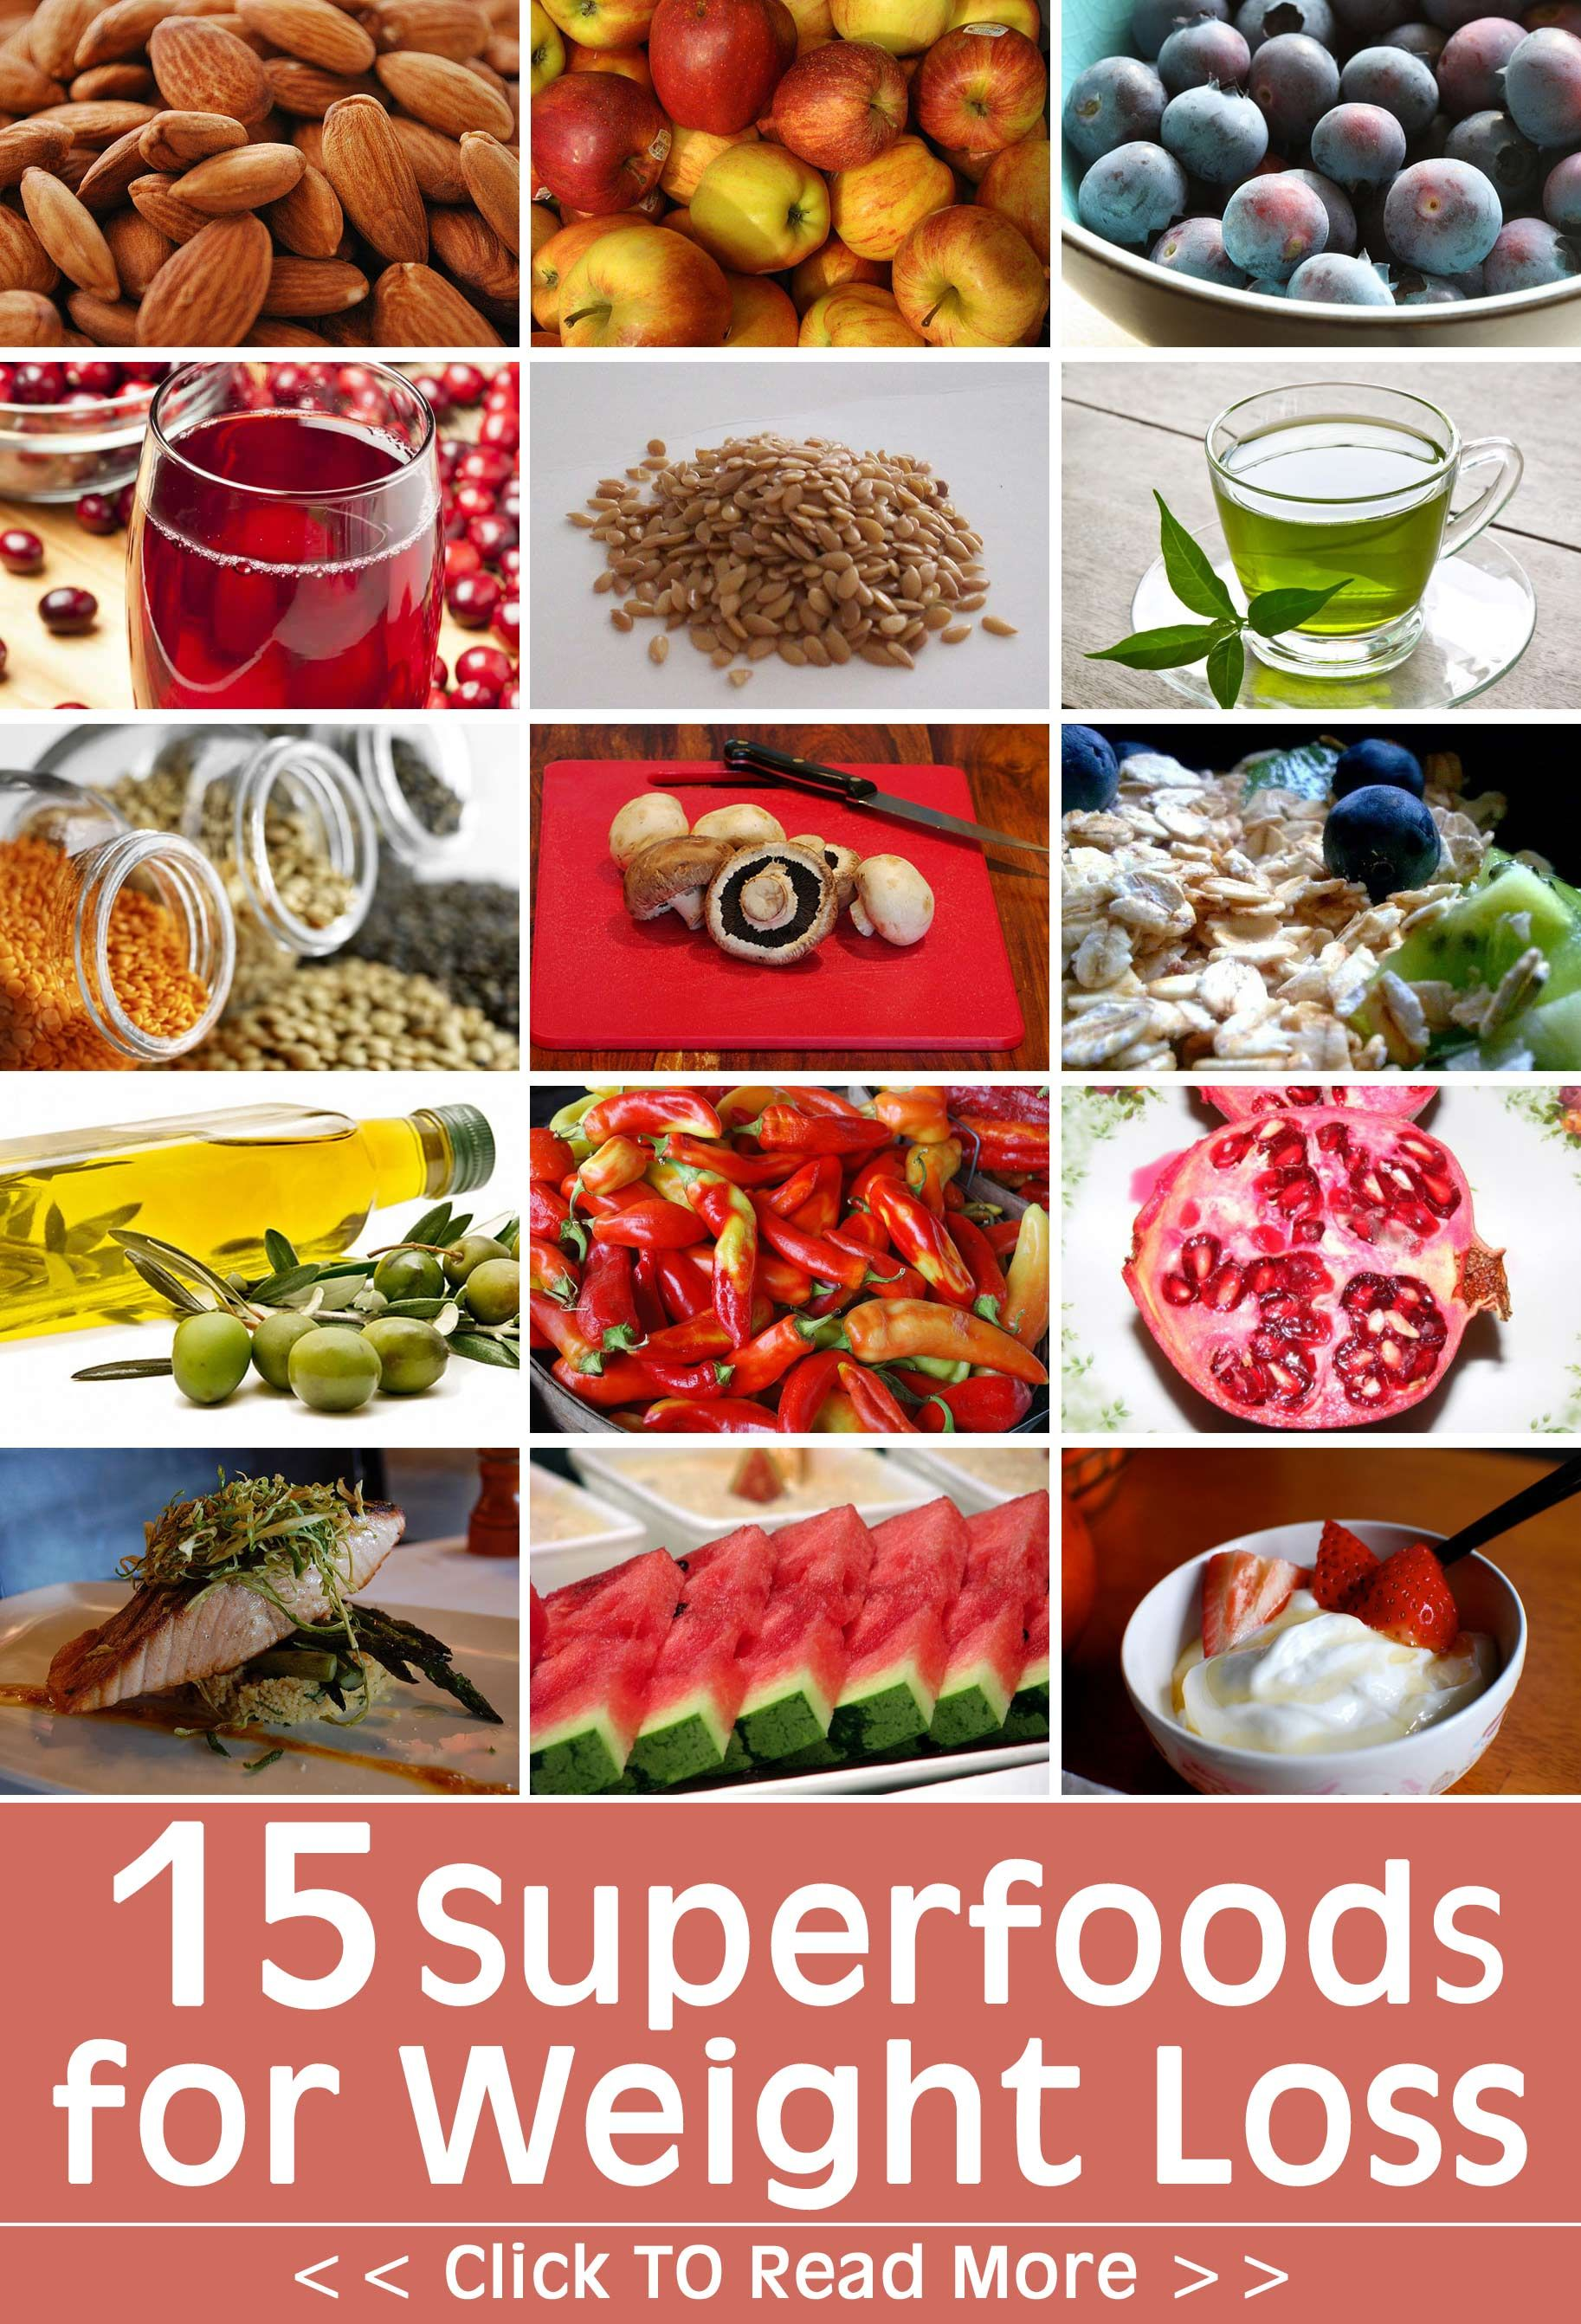 31 Superfoods For Weight Loss Backed By Science recommendations